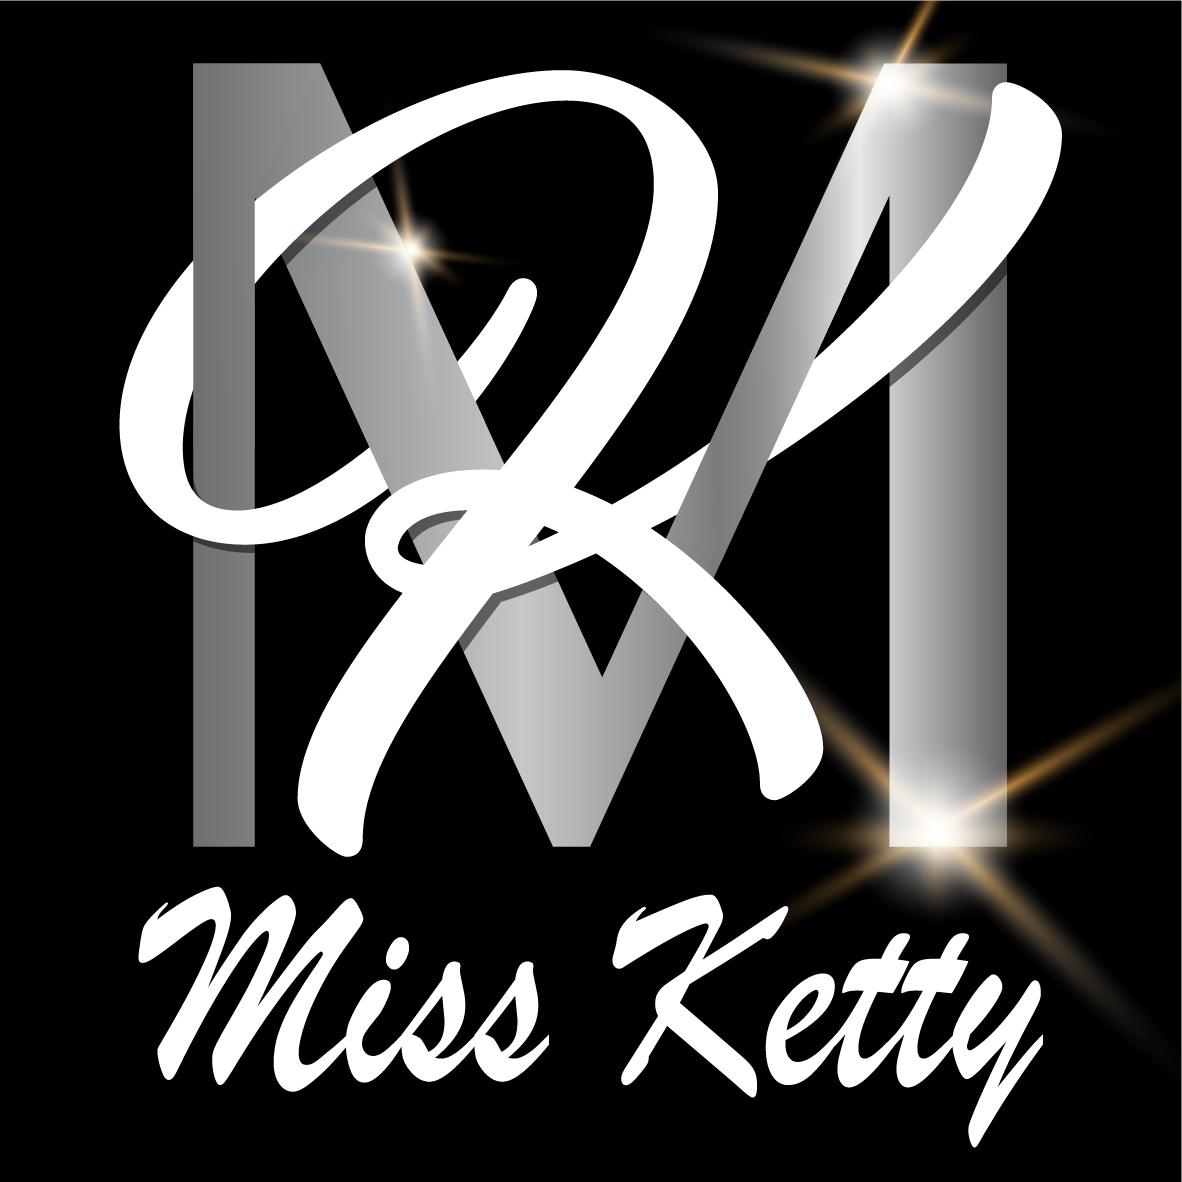 DJ Miss Ketty